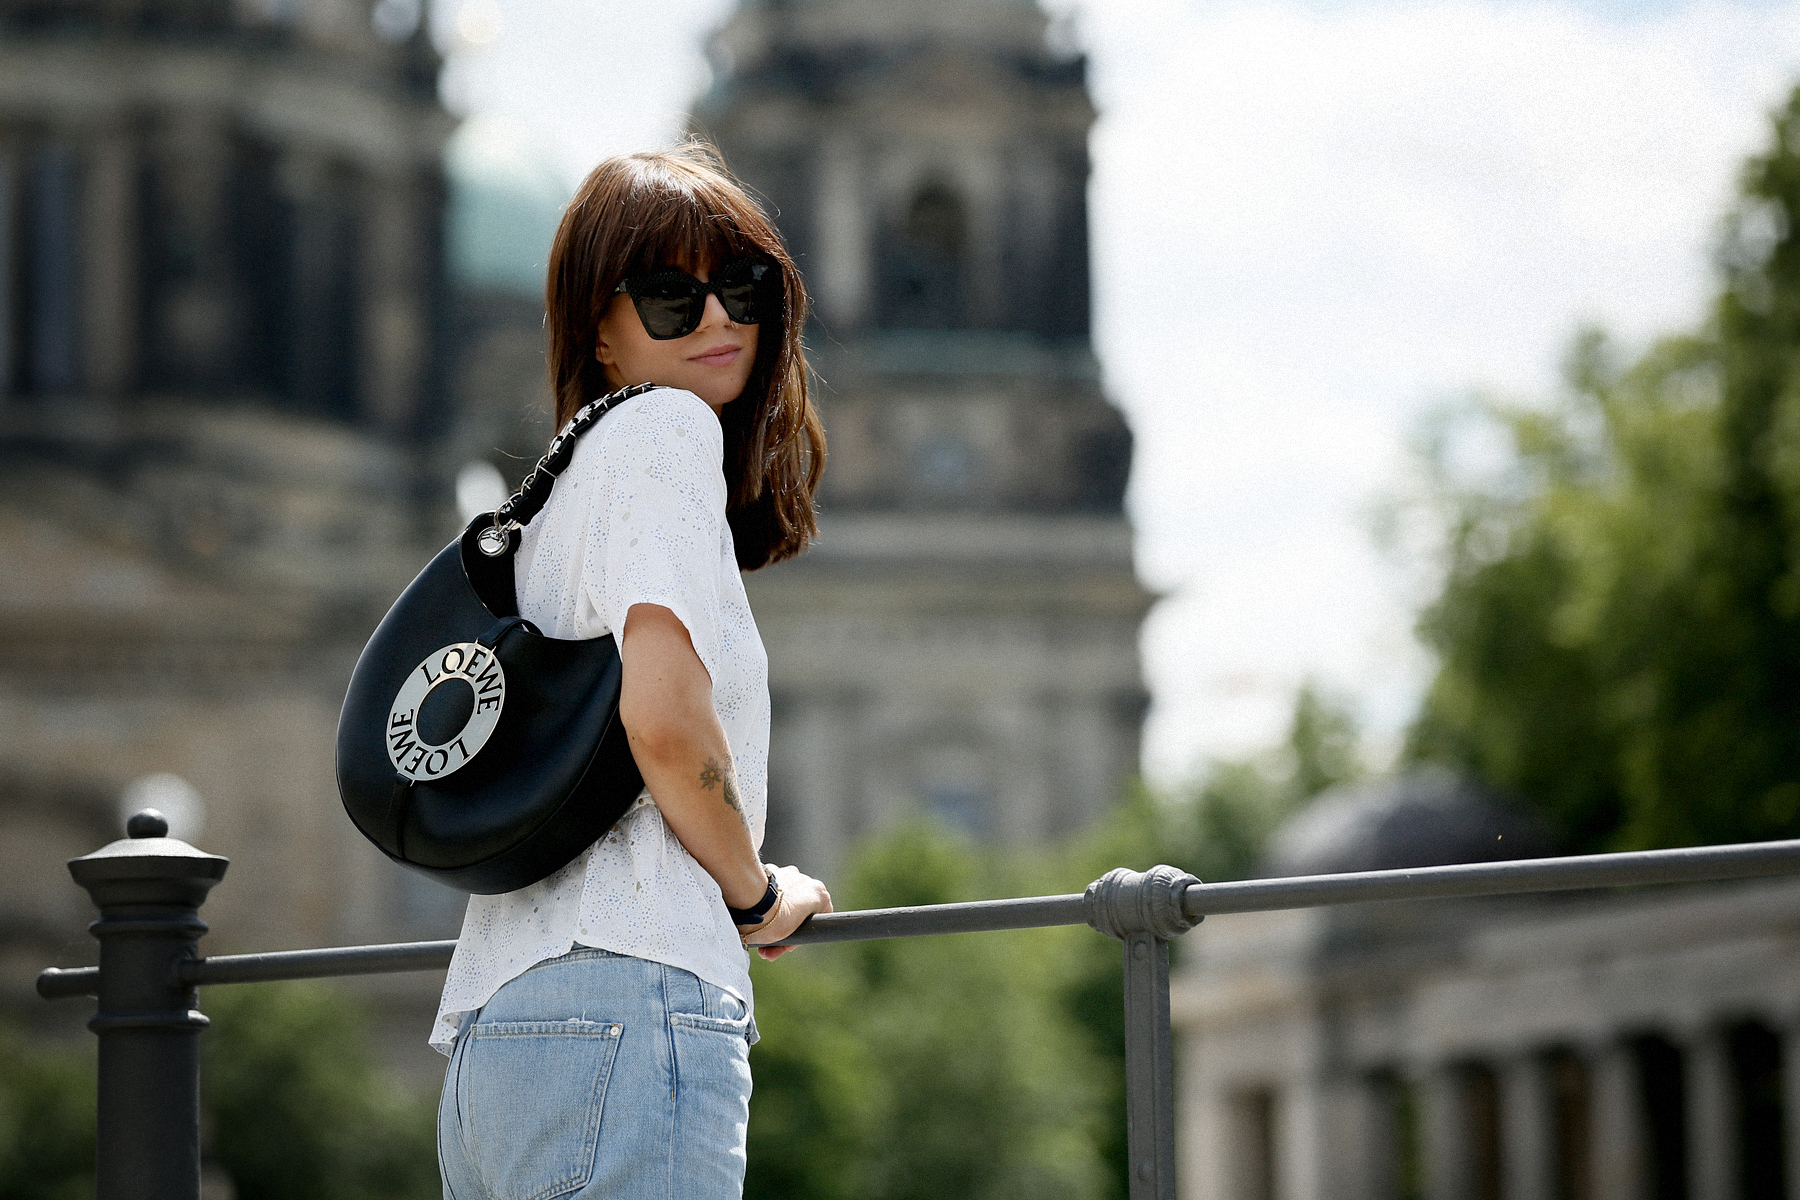 outfit berlin dom museumsinsel denim white blouse parisienne mbym jeanne damas style bangs brunette chic look outfitblogger breuninger loewe joyce bag mcm sunglasses summer german fashion blogger cats & dogs modeblog ricarda schernus max bechmann foto 7